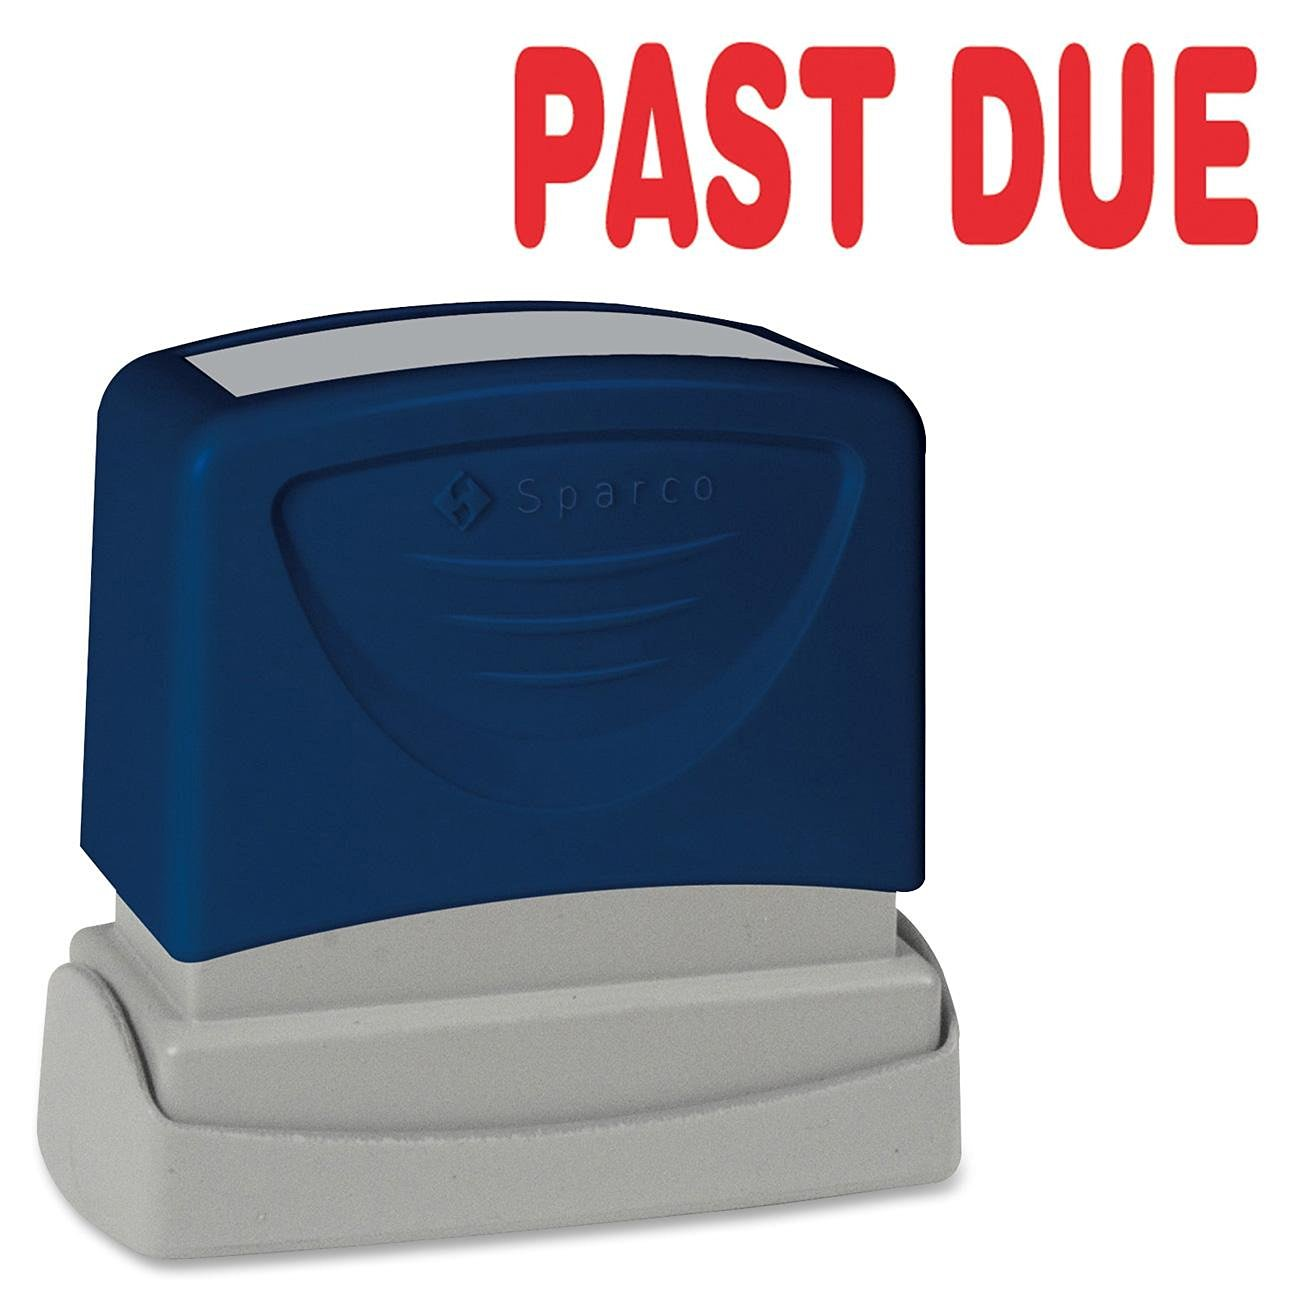 """Sparco Products Products - PAST DUE Title Stamp, 1-3/4""""x5/8"""", Red Ink - Sold as 1 EA - Title stamper offers a specially designed system that evenly disperses instant-drying ink. Protective end piece ensures clean impressions. Stamps """"PAST DUE."""" Impression size is 1-3/4"""" x 5/8""""."""